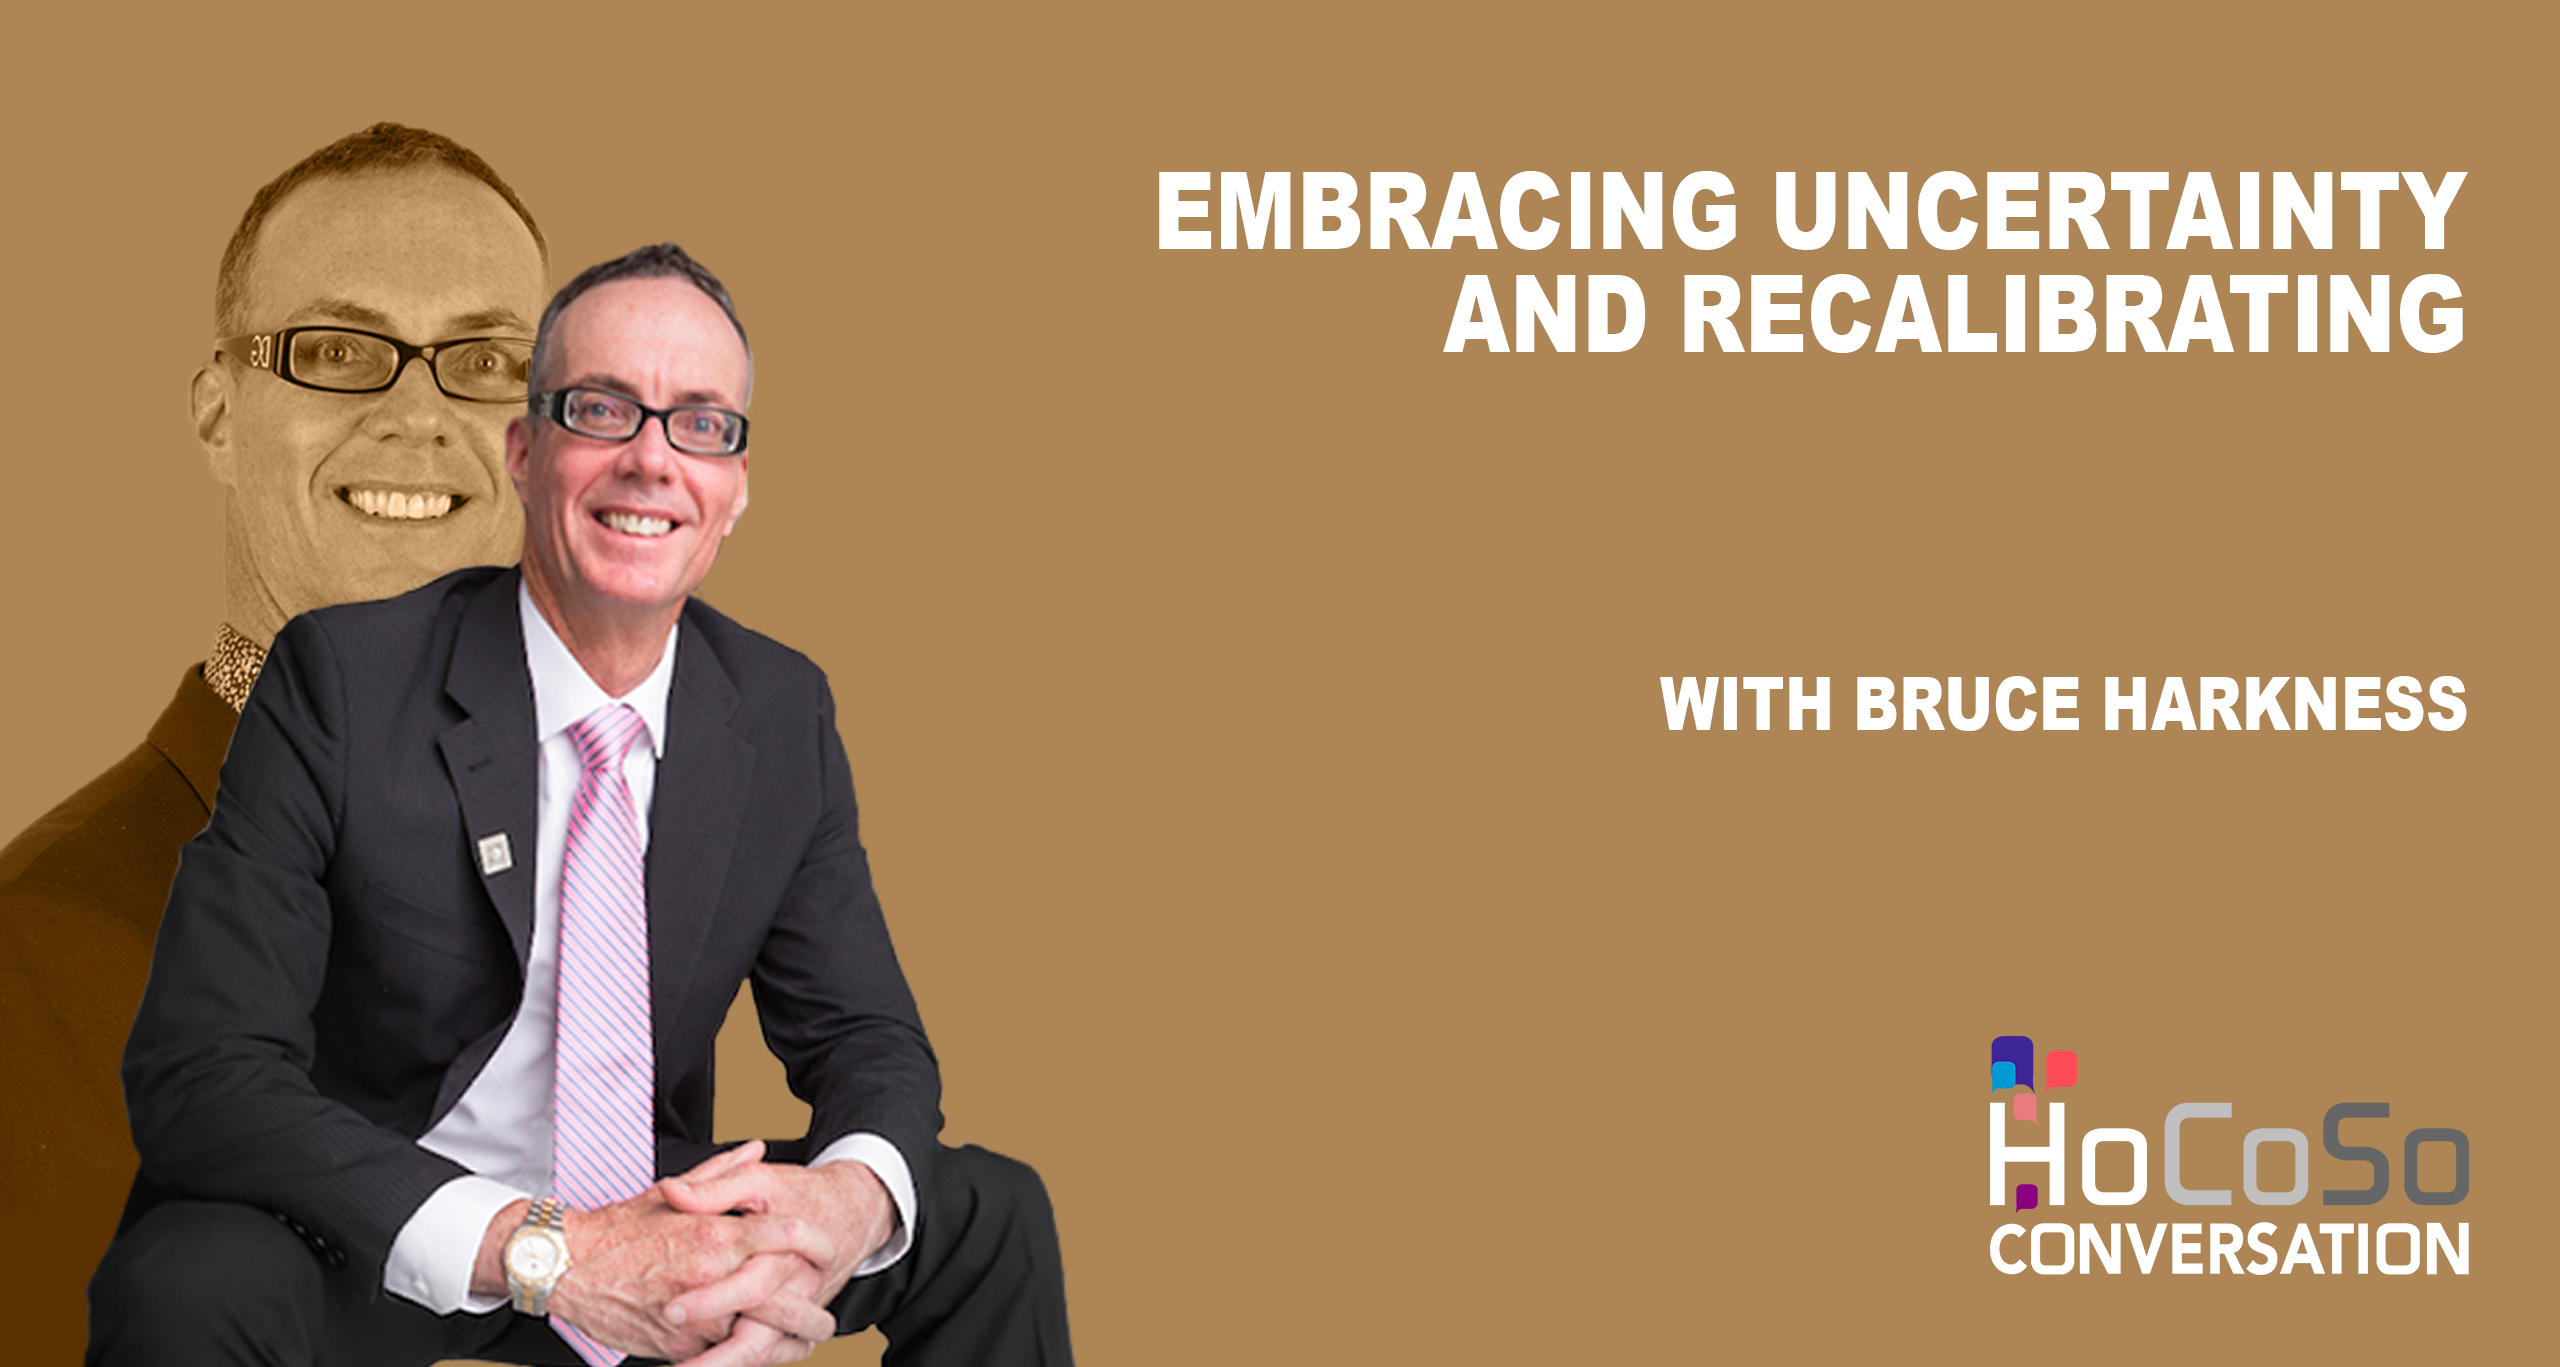 Bruce Harkness for the Hospitality Resilience Series